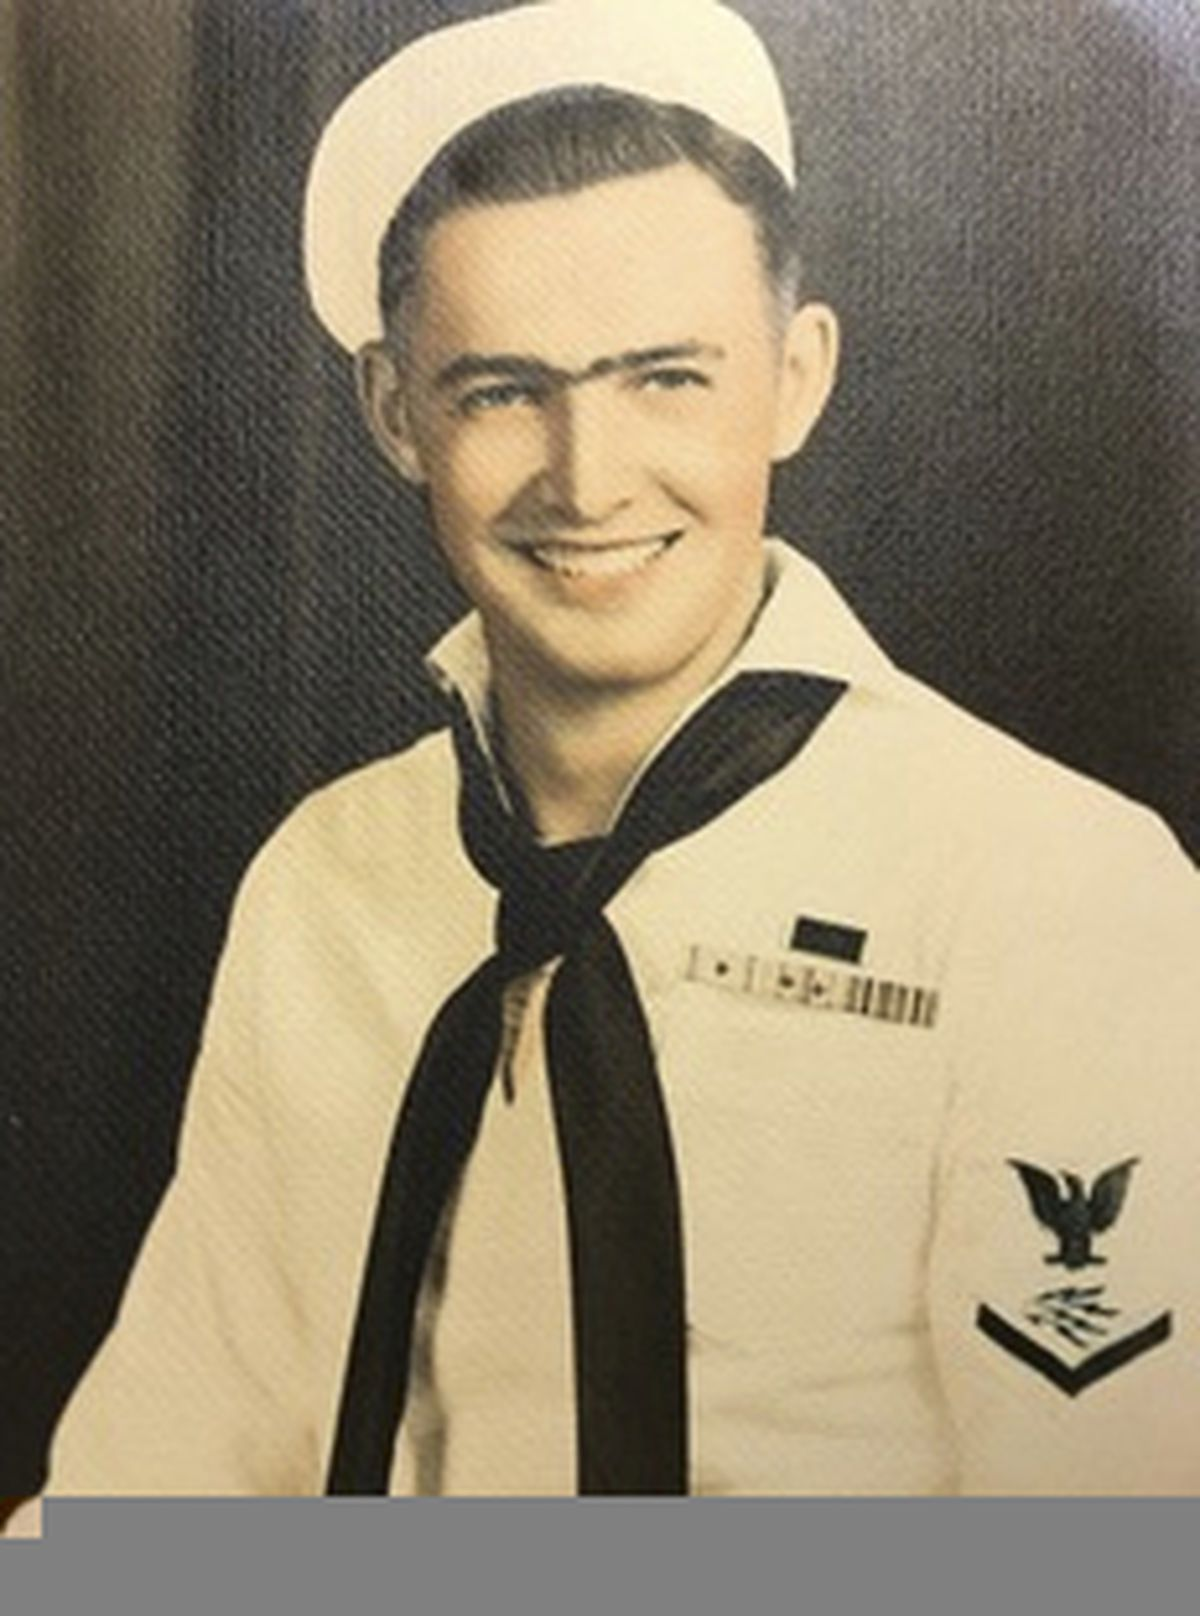 This photo provided by retired U.S. Navy Cmdr. Don Long shows Long in his Navy uniform in 1943. Long wasn't at Pearl Harbor when Japanese warplanes bombed Hawaii on December 7, 1941 - he was on the opposite side of Oahu aboard an anchored seaplane in Kaneohe Bay. But the Japanese strike reached his installation soon after Pearl Harbor, and the young sailor watched from afar as explosions and gunfire consumed him and his comrades. Now, 77 years later, Long will remember that day from even farther away - across the Pacific at his home in Northern California. (Don Long via AP)